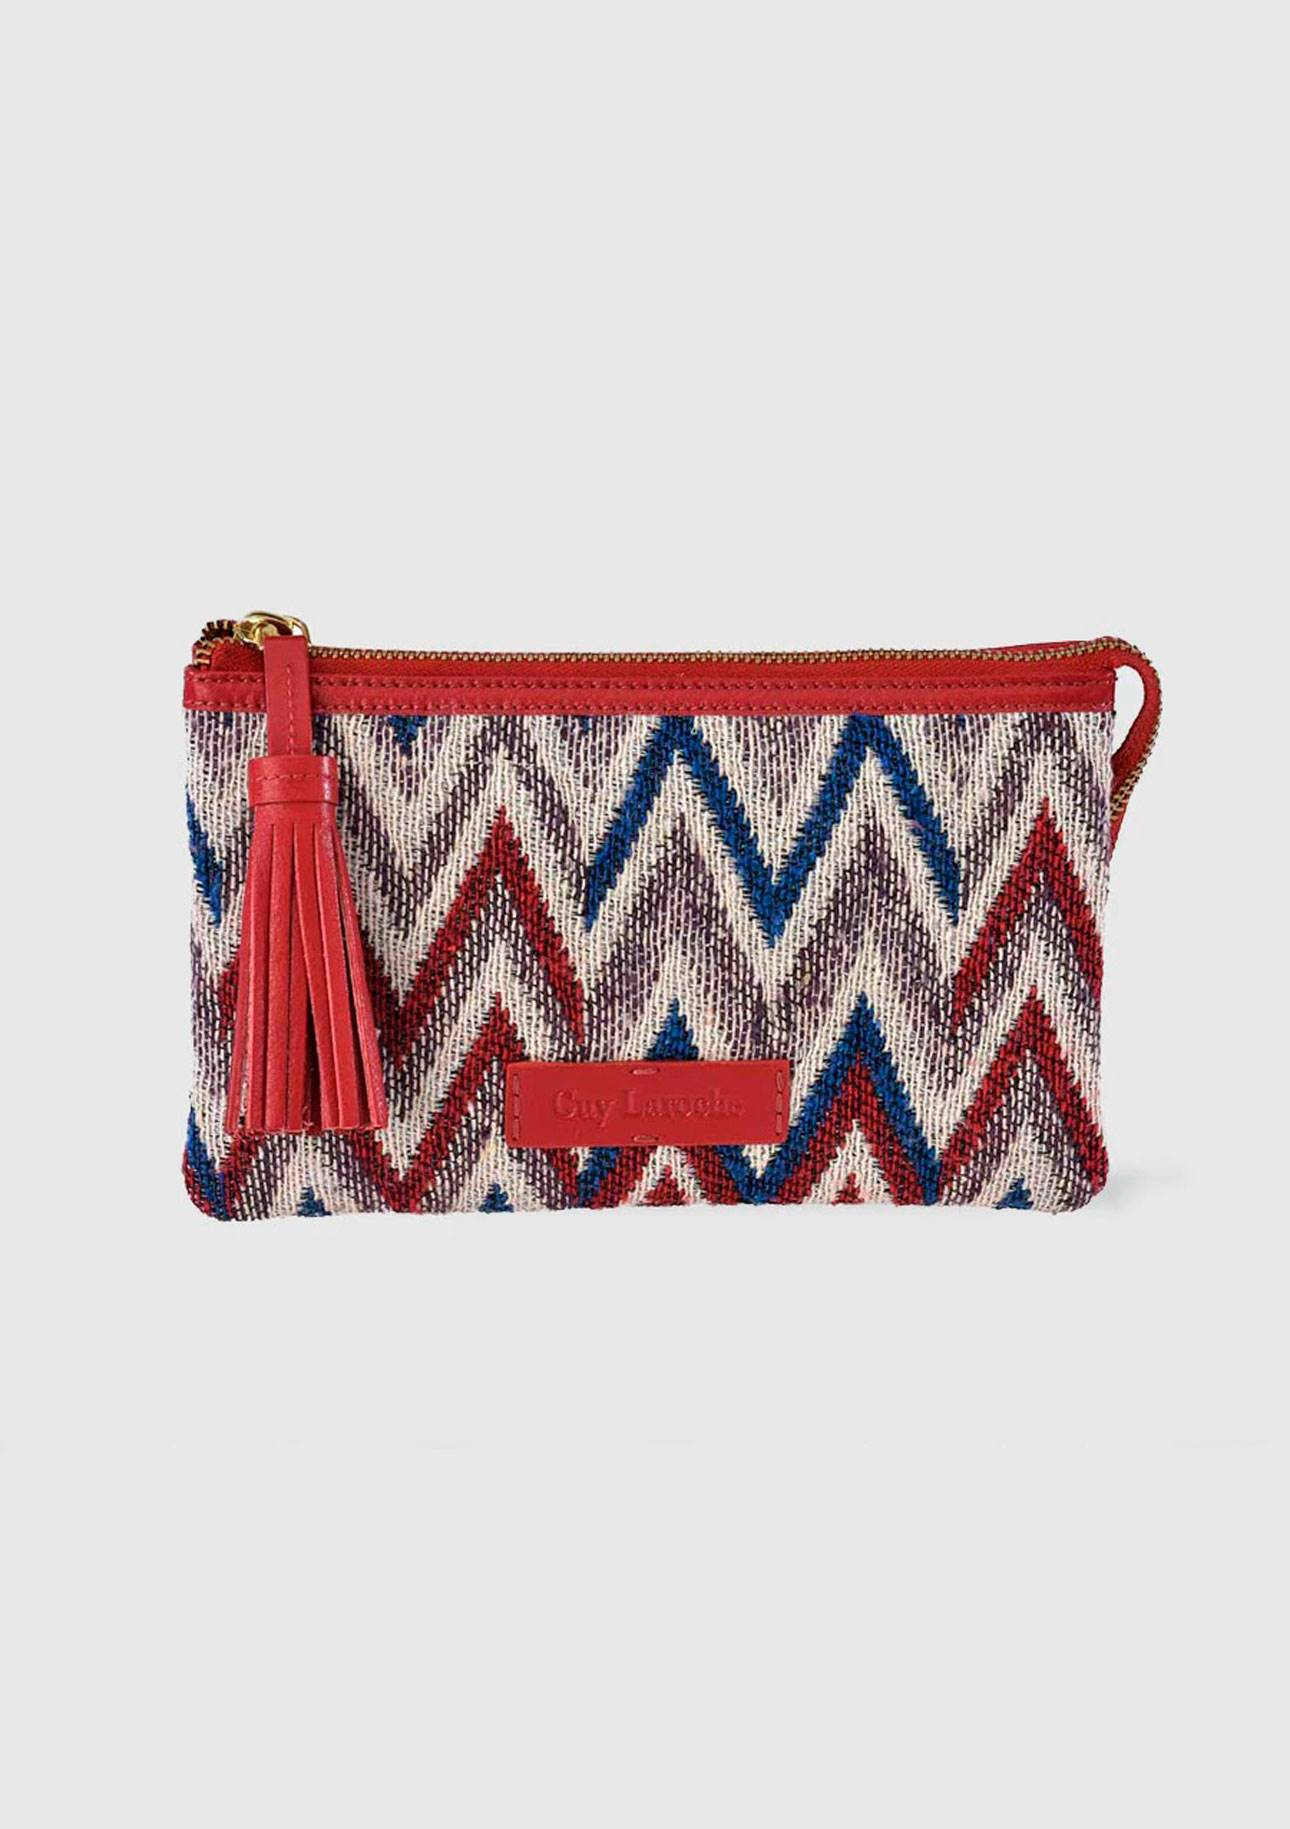 Clutch de Guy Larroche